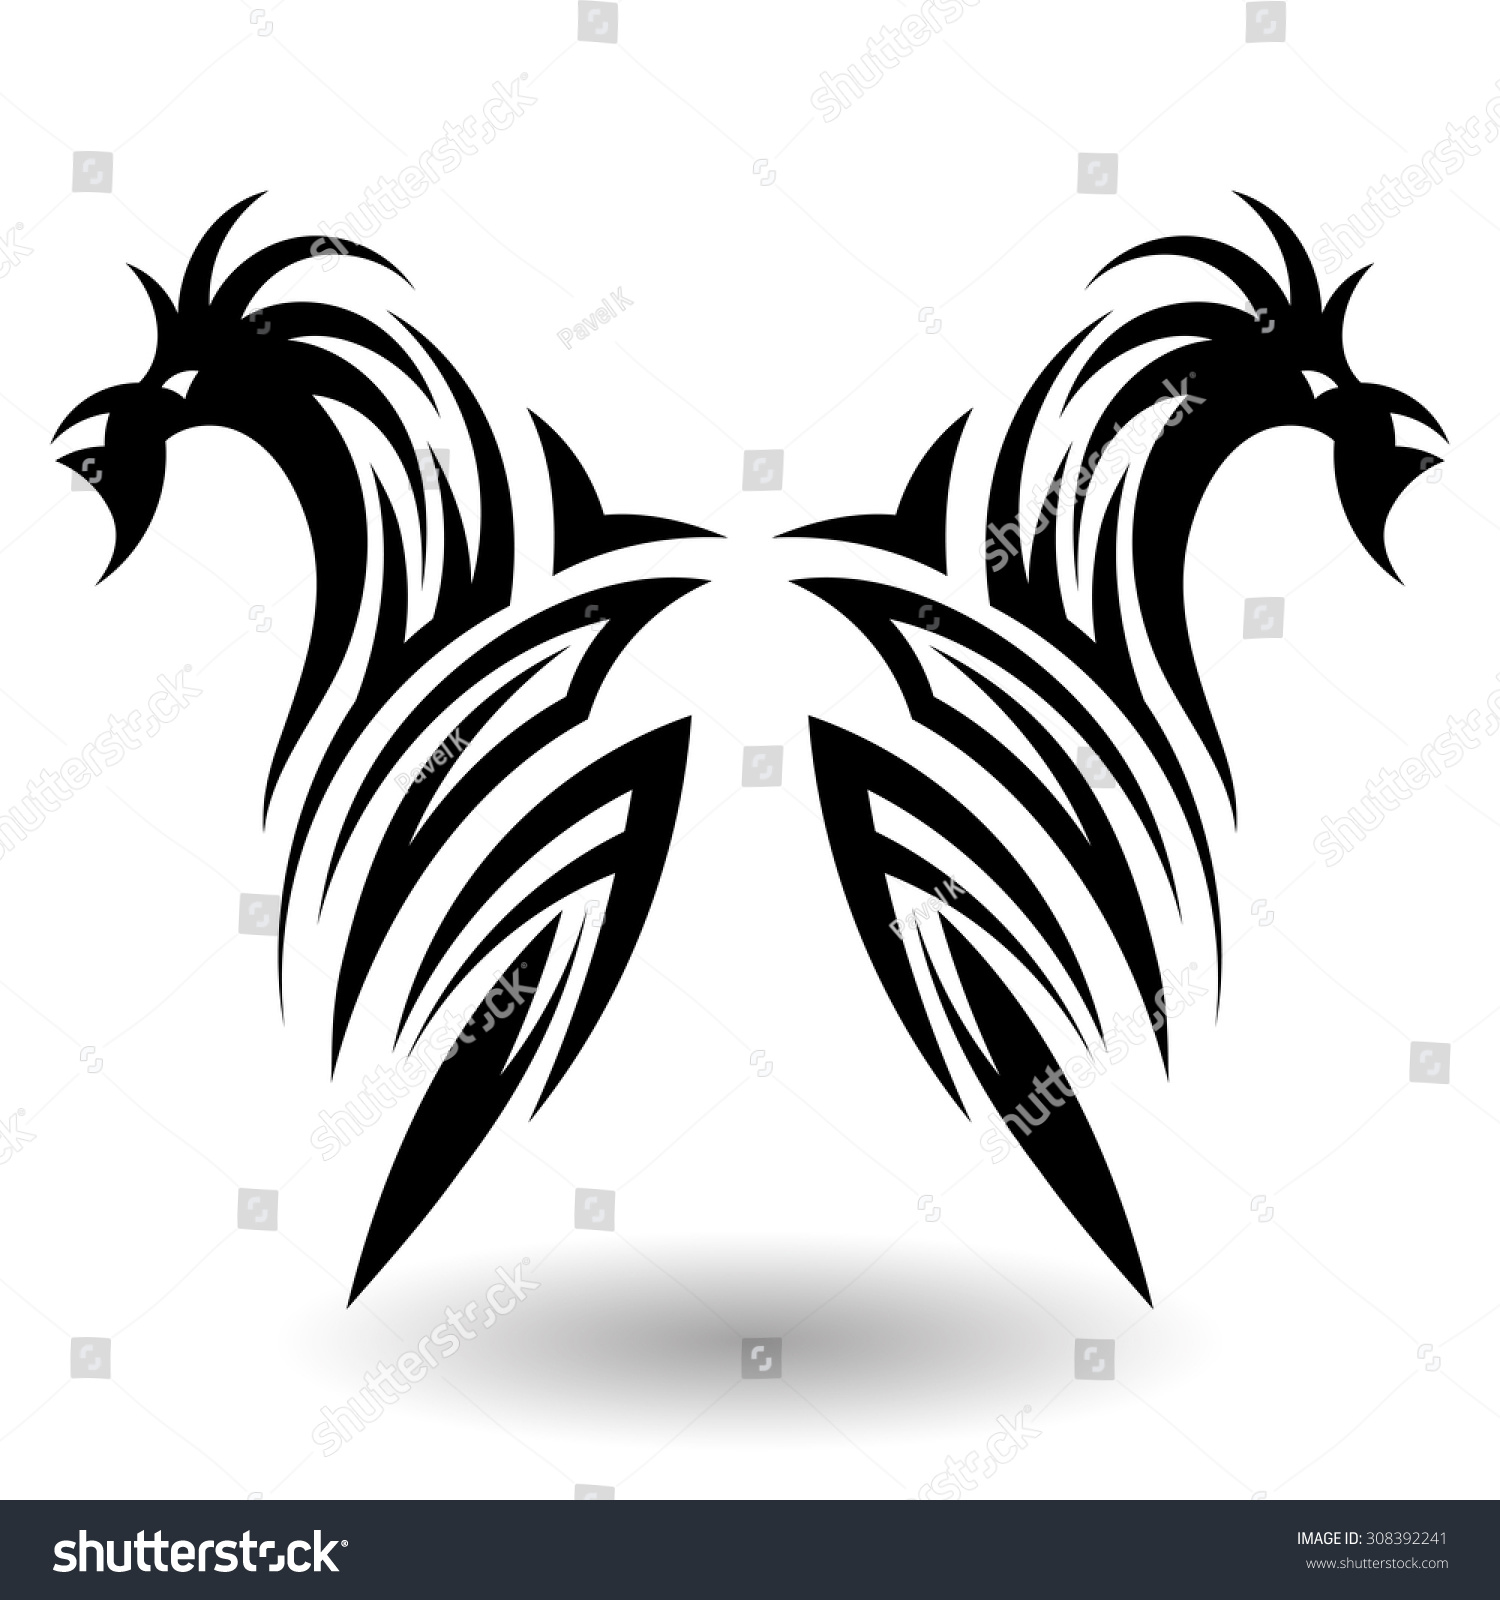 38fb23bd9359b Hand Drawn Tribal Tattoo in Wings Shape. . Elegant Smooth Design Over White  Background.